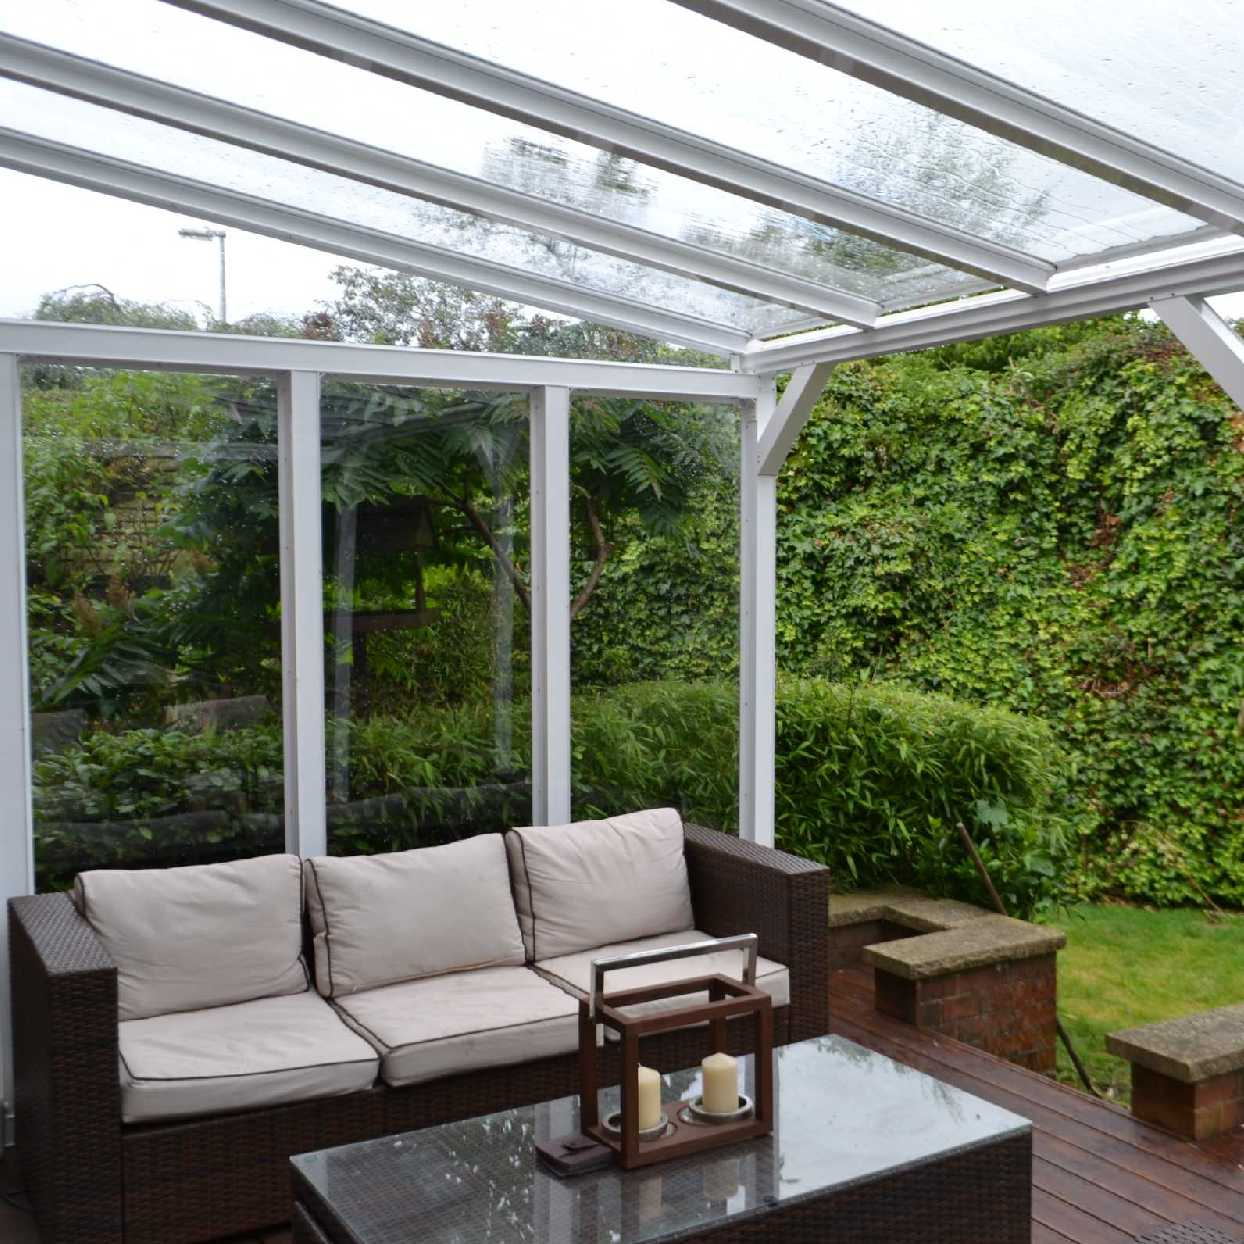 Great selection of Omega Smart White Lean-To Canopy with 16mm Polycarbonate Glazing - 6.3m (W) x 3.5m (P), (4) Supporting Posts